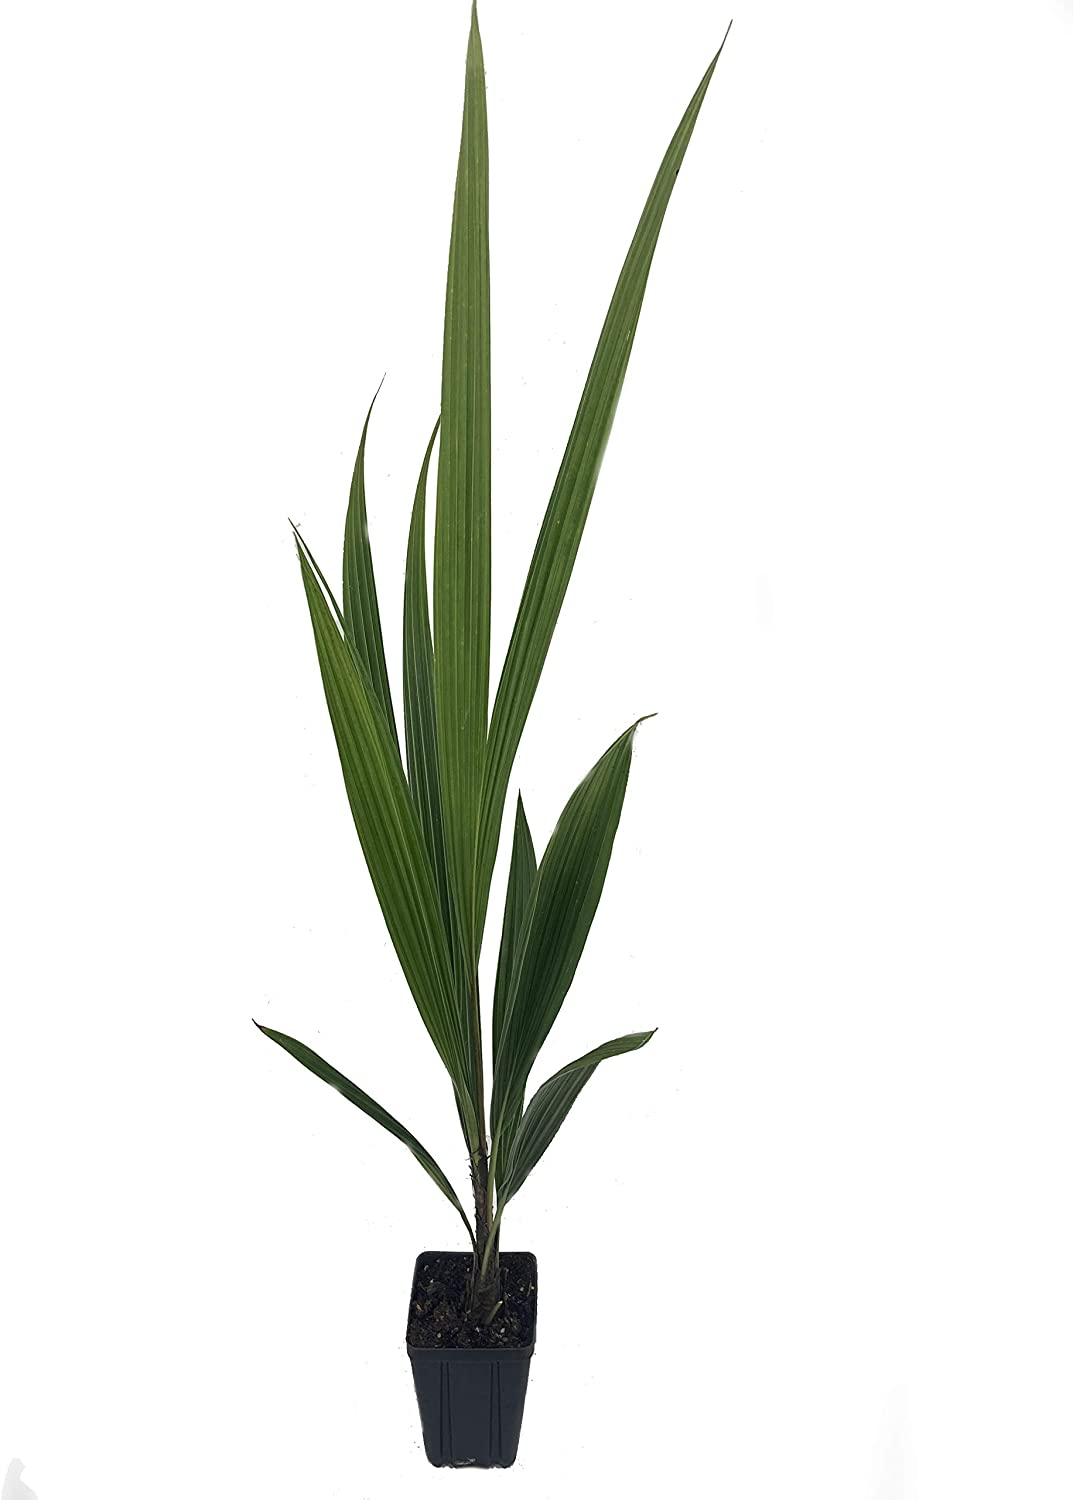 High Plateau Coconut Palm - 3 Live in Pots Becca Max 64% OFF Time sale Plants Inch 4